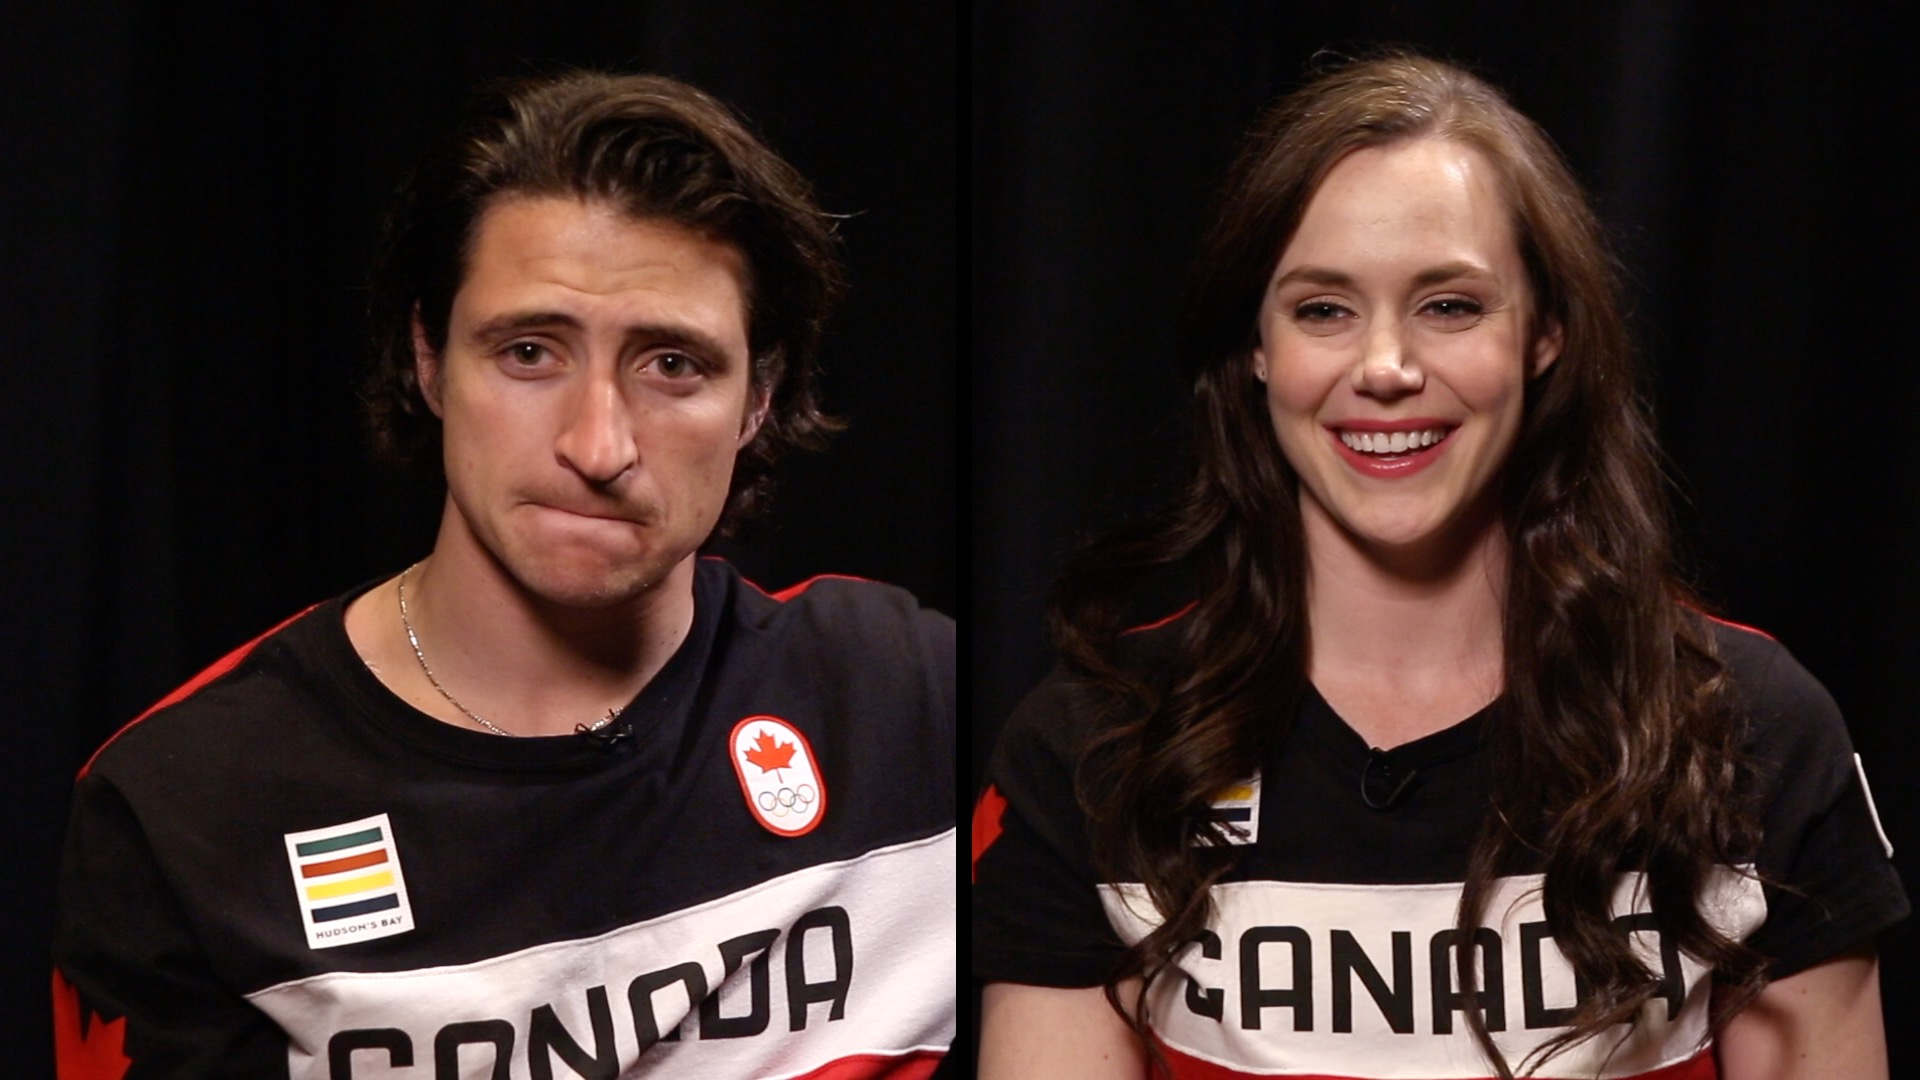 Tessa and scott dating 2019 olympics